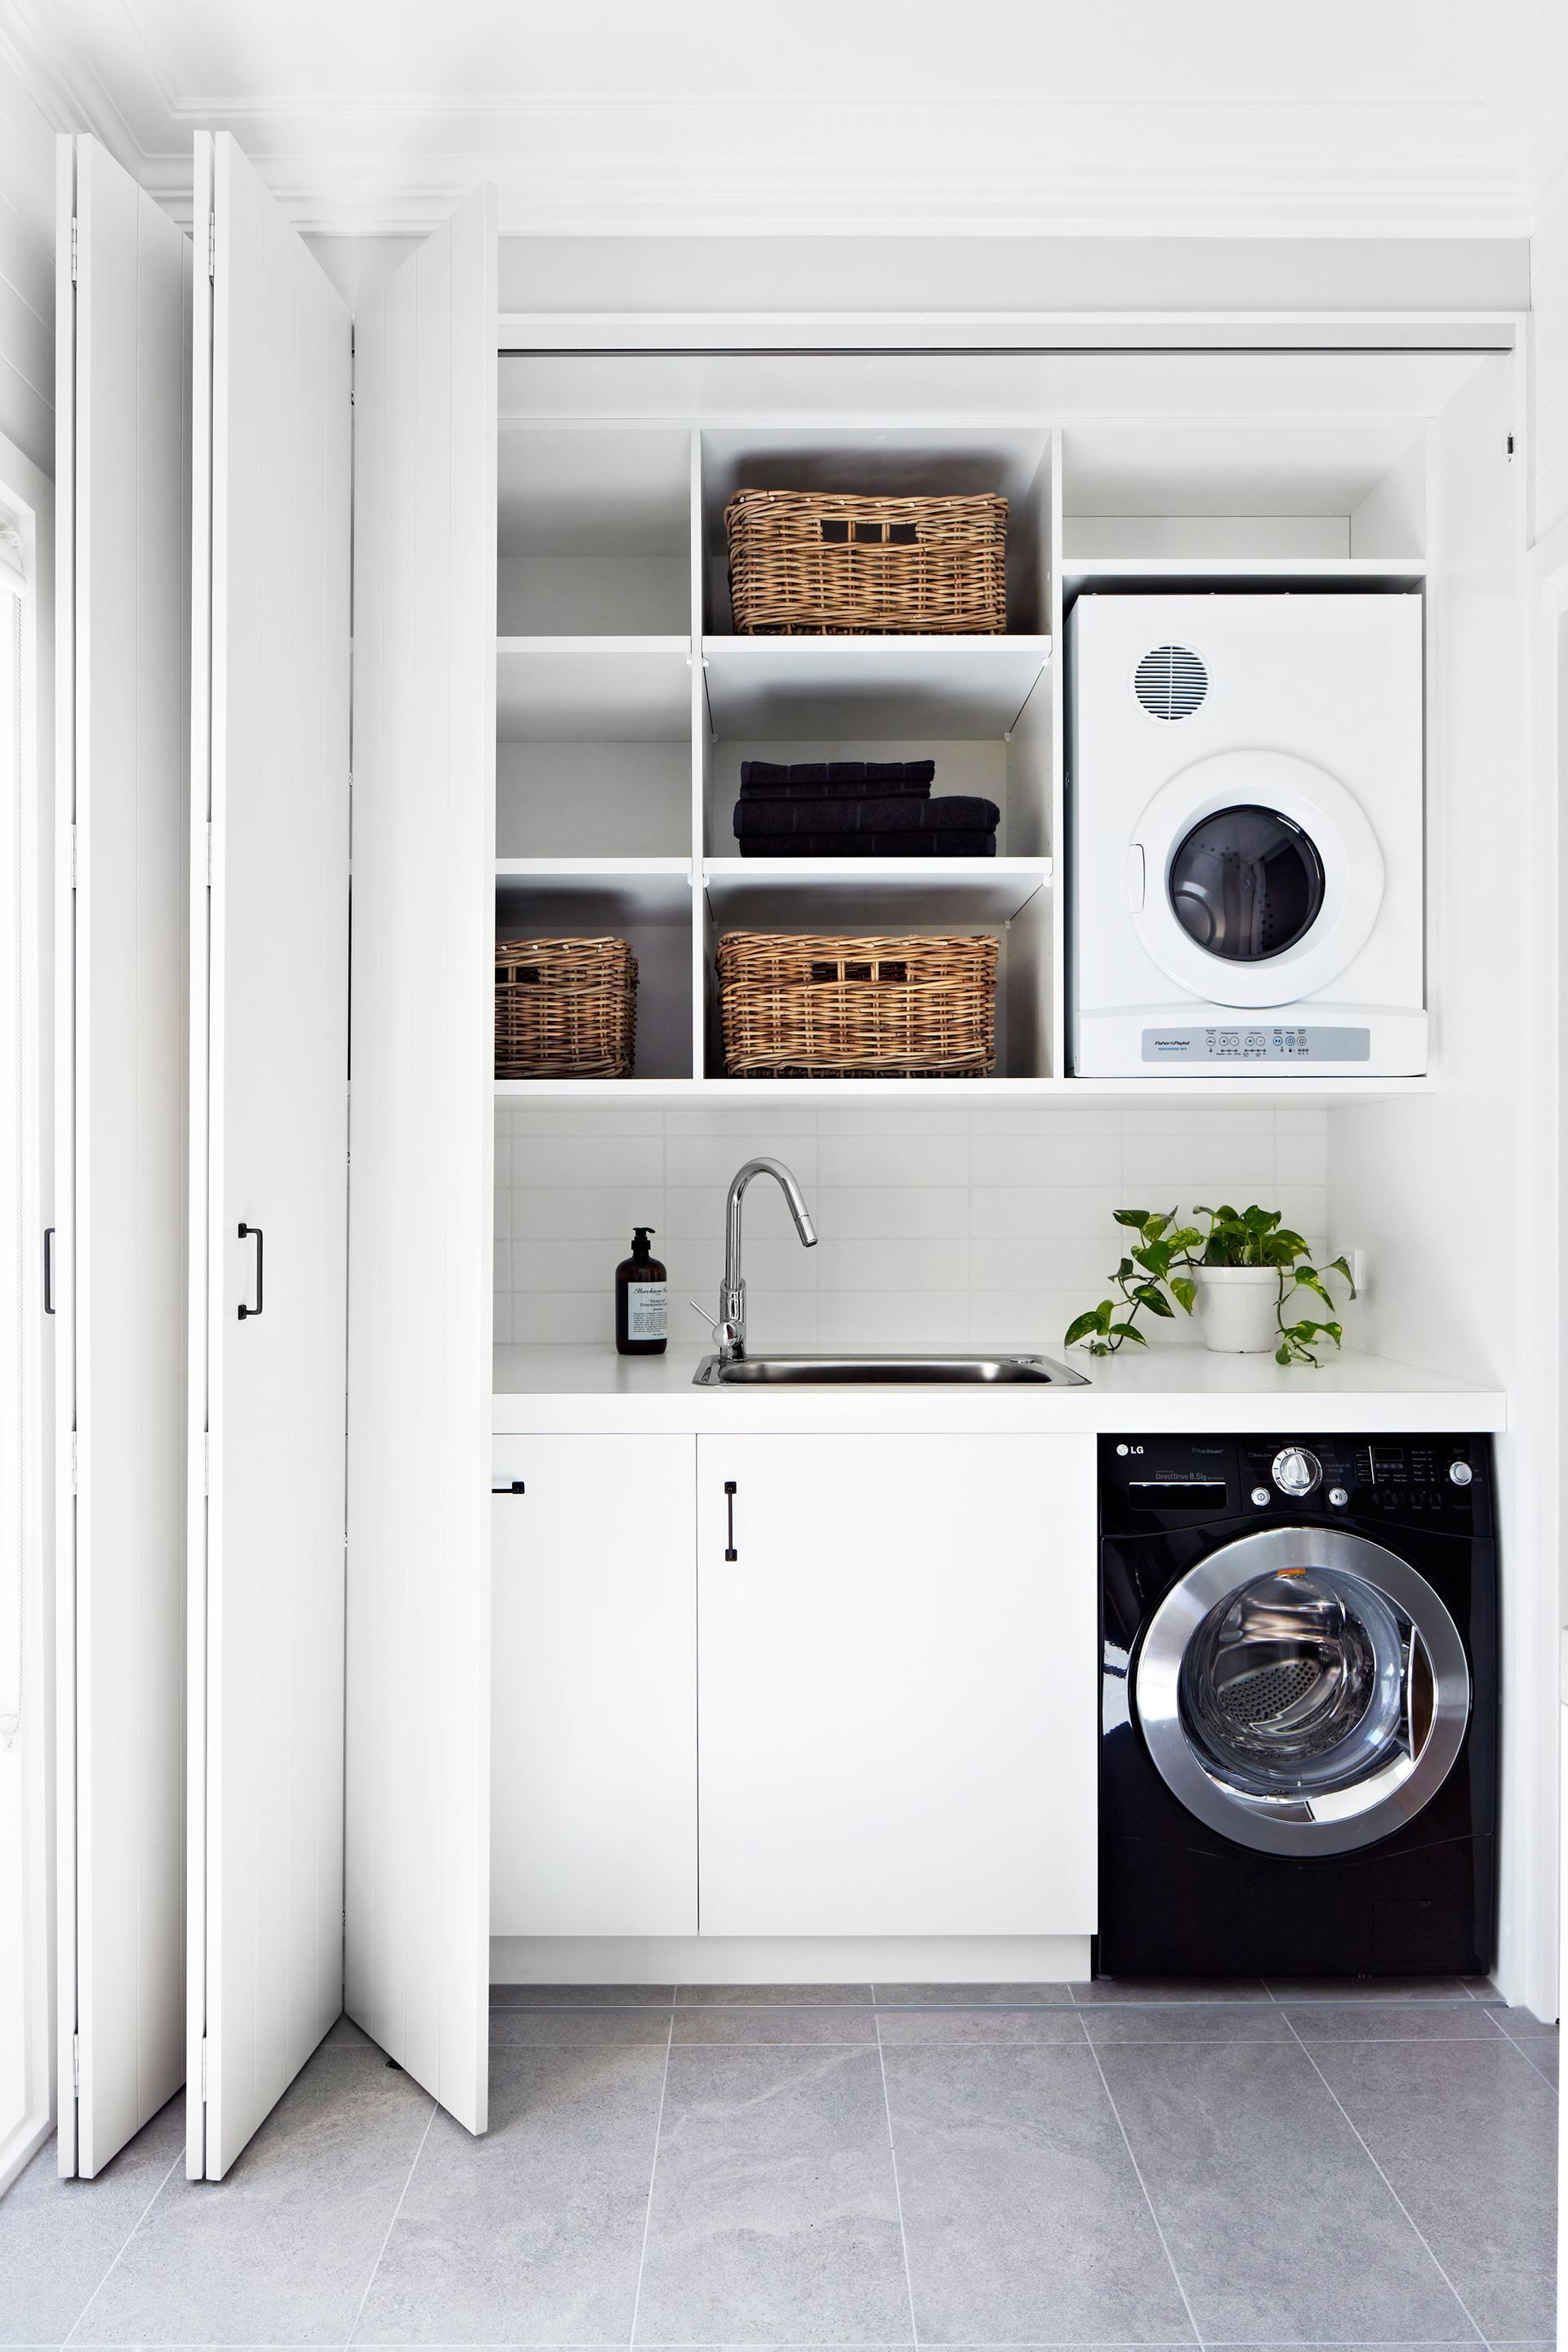 Ruang Laundry Minimalis 25 Laundry Room Cabinets Ideas And Design Decorating Minimalist